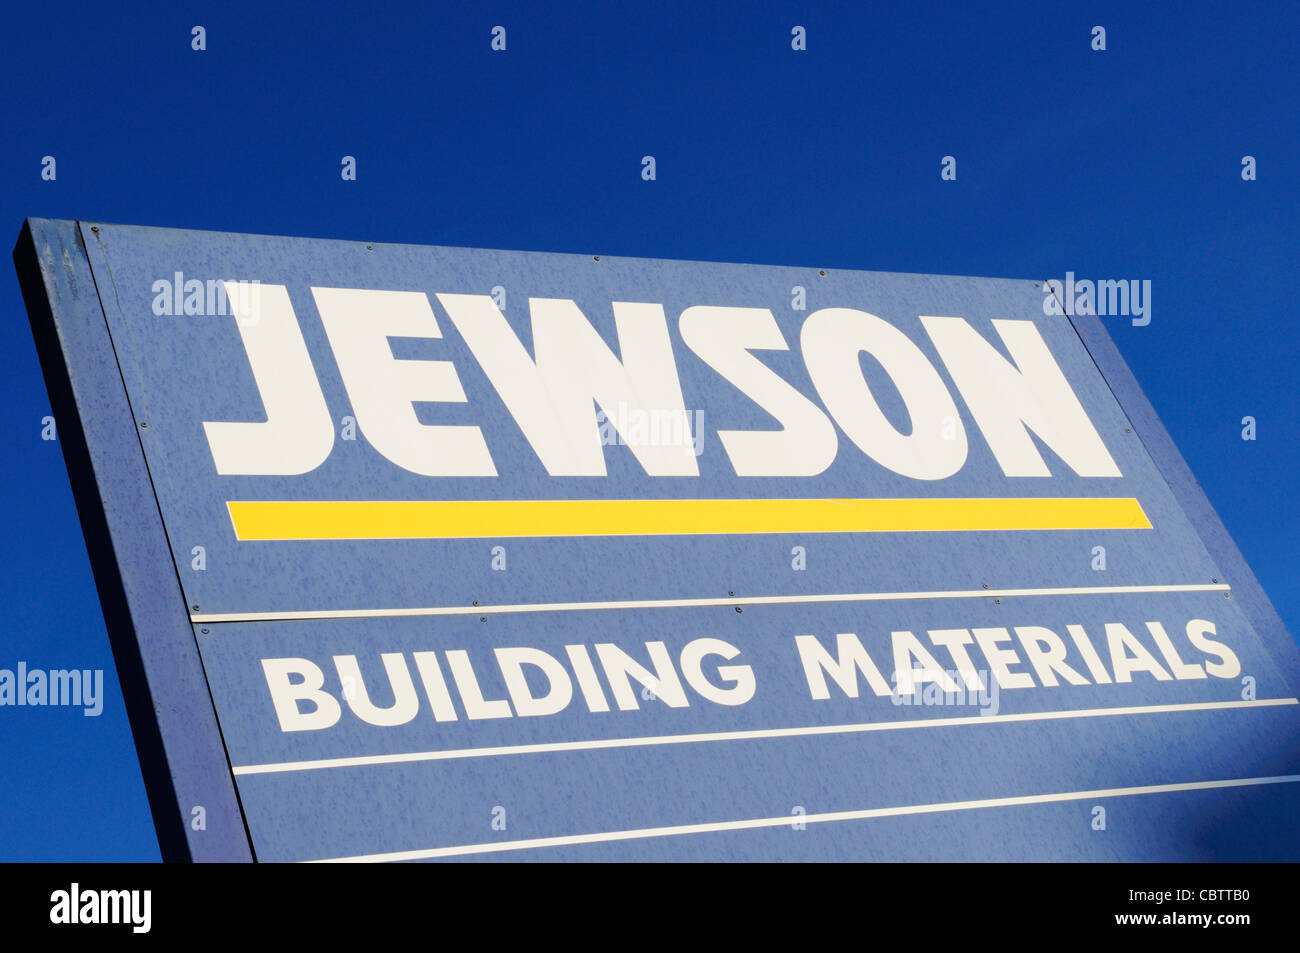 Jewson Builder's Merchants Sign, Stratford, London, England, UK - Stock Image